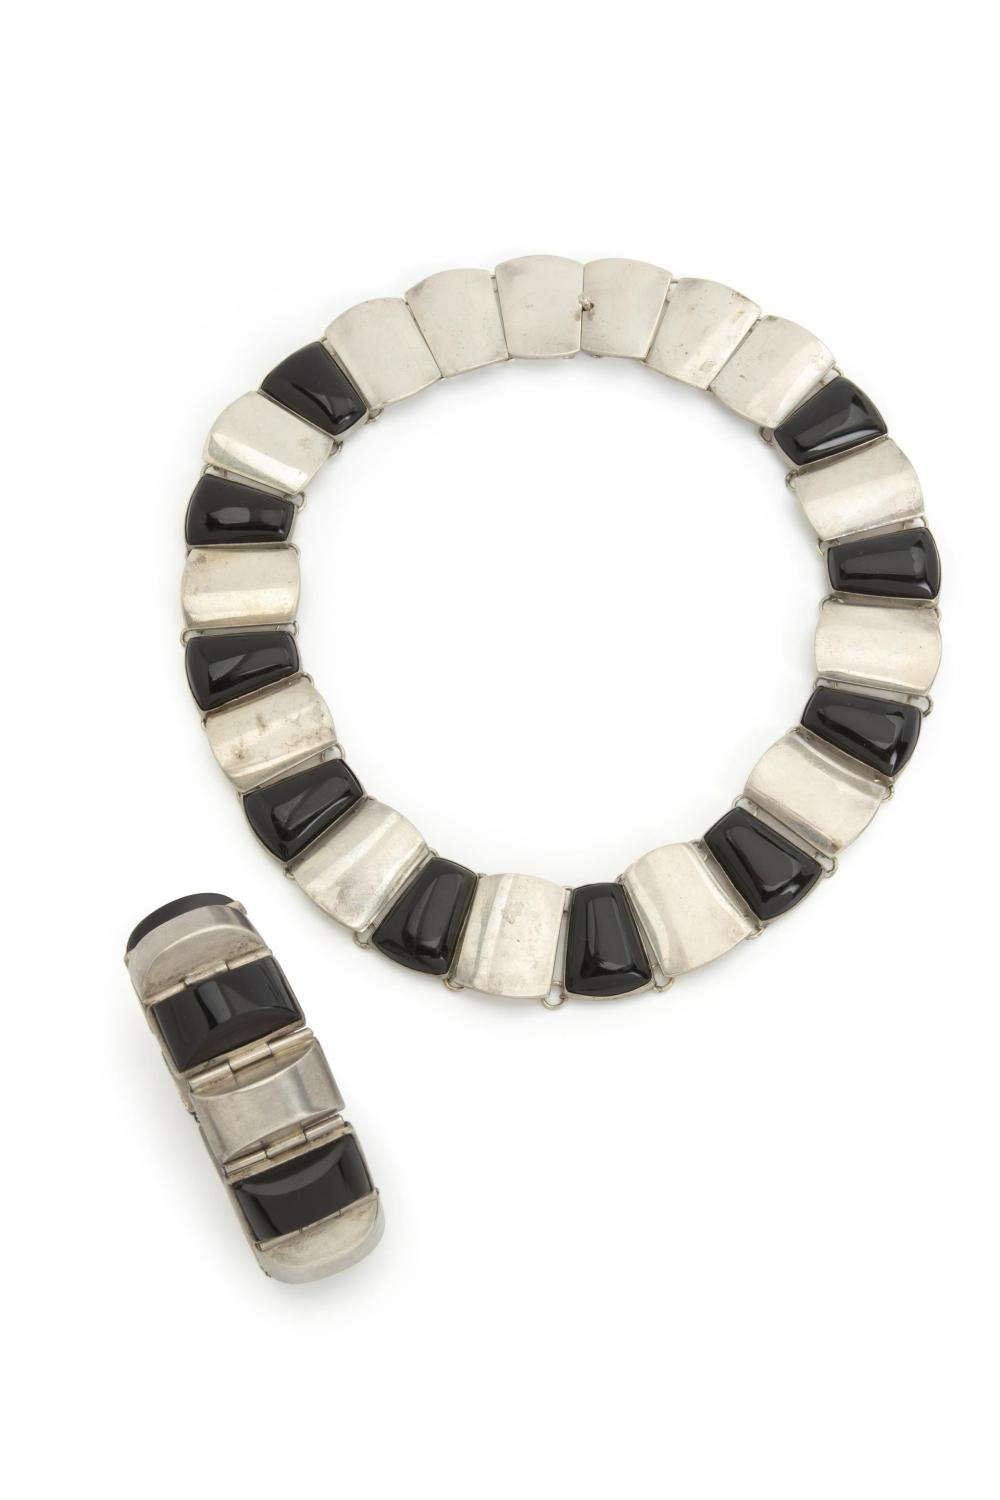 An assembled set of Antonio Pineda silver and obsidian jewelry